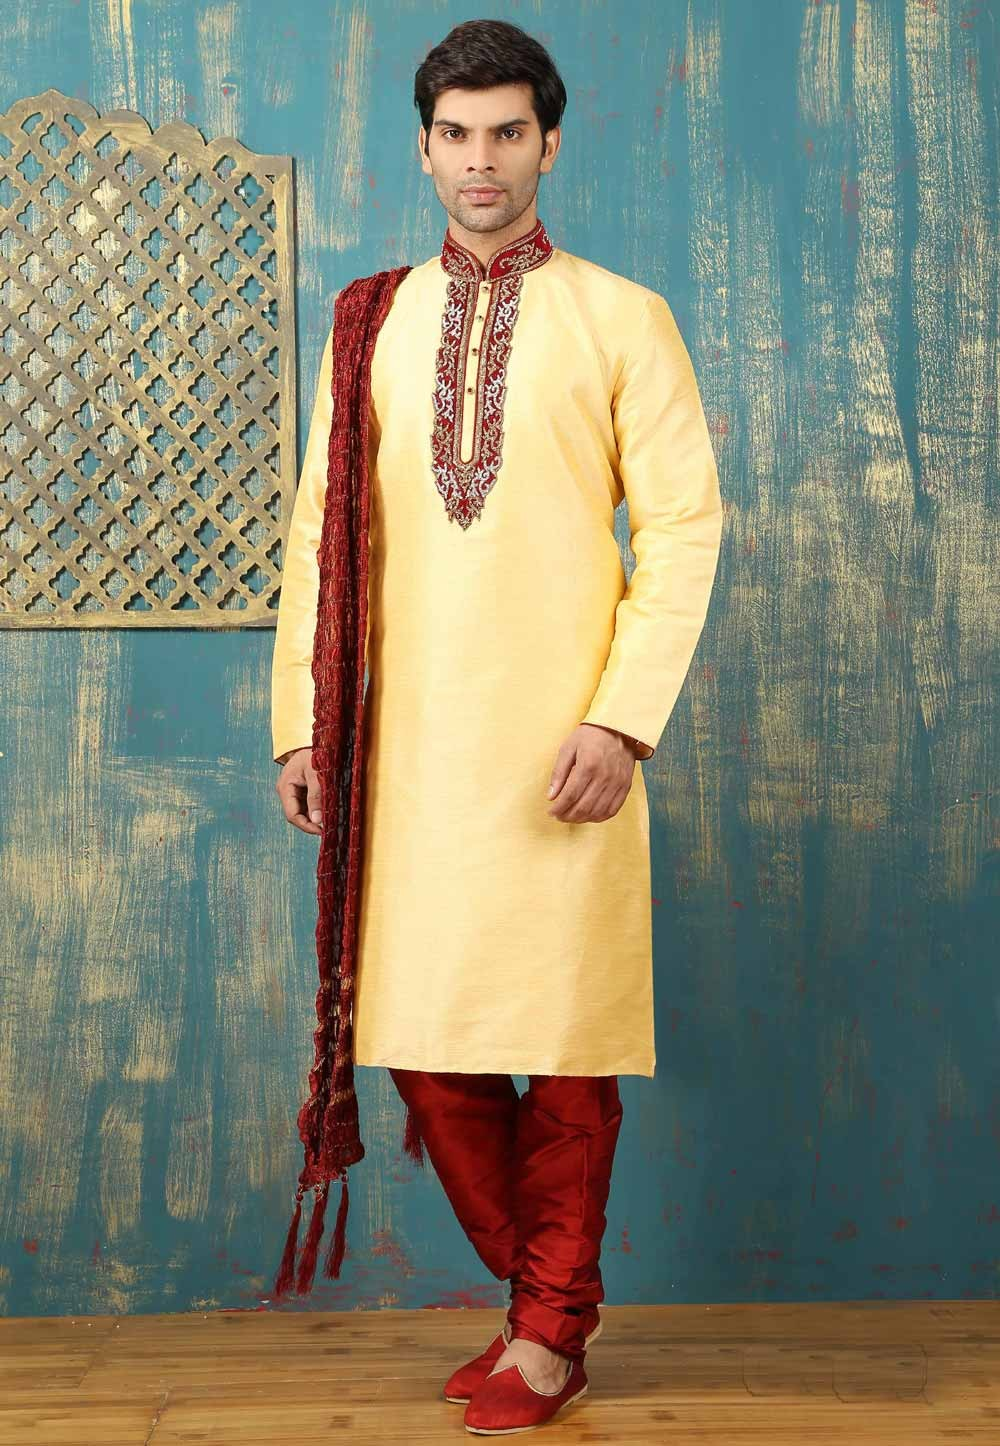 Yellow Color Dupion Art Silk Men's Readymade Kurta Pajama.